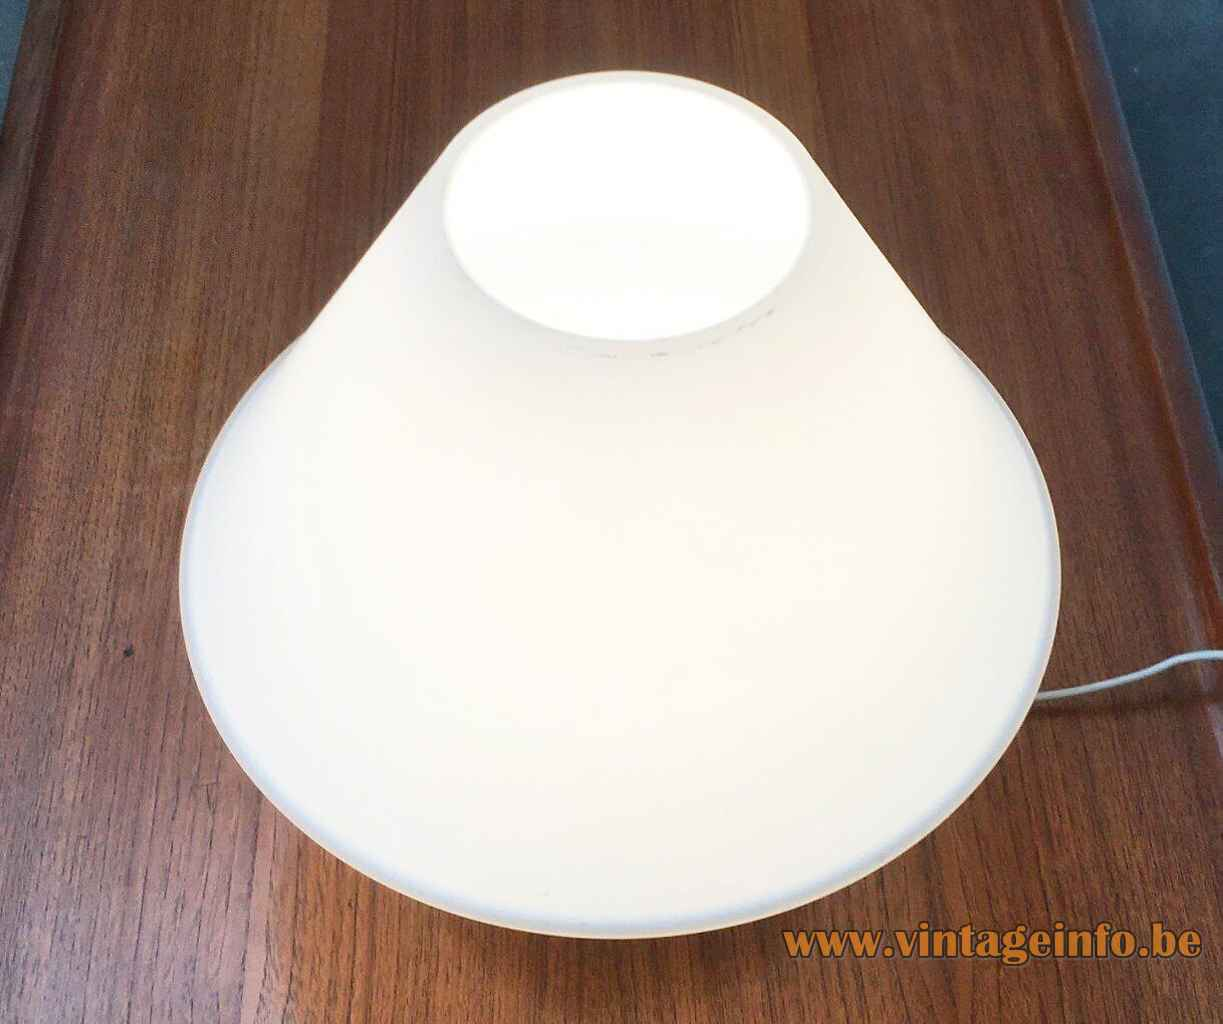 Glashütte Limburg 6249 table lamp frosted opal glass round base & mushroom lampshade 1970s 1980s Germany top